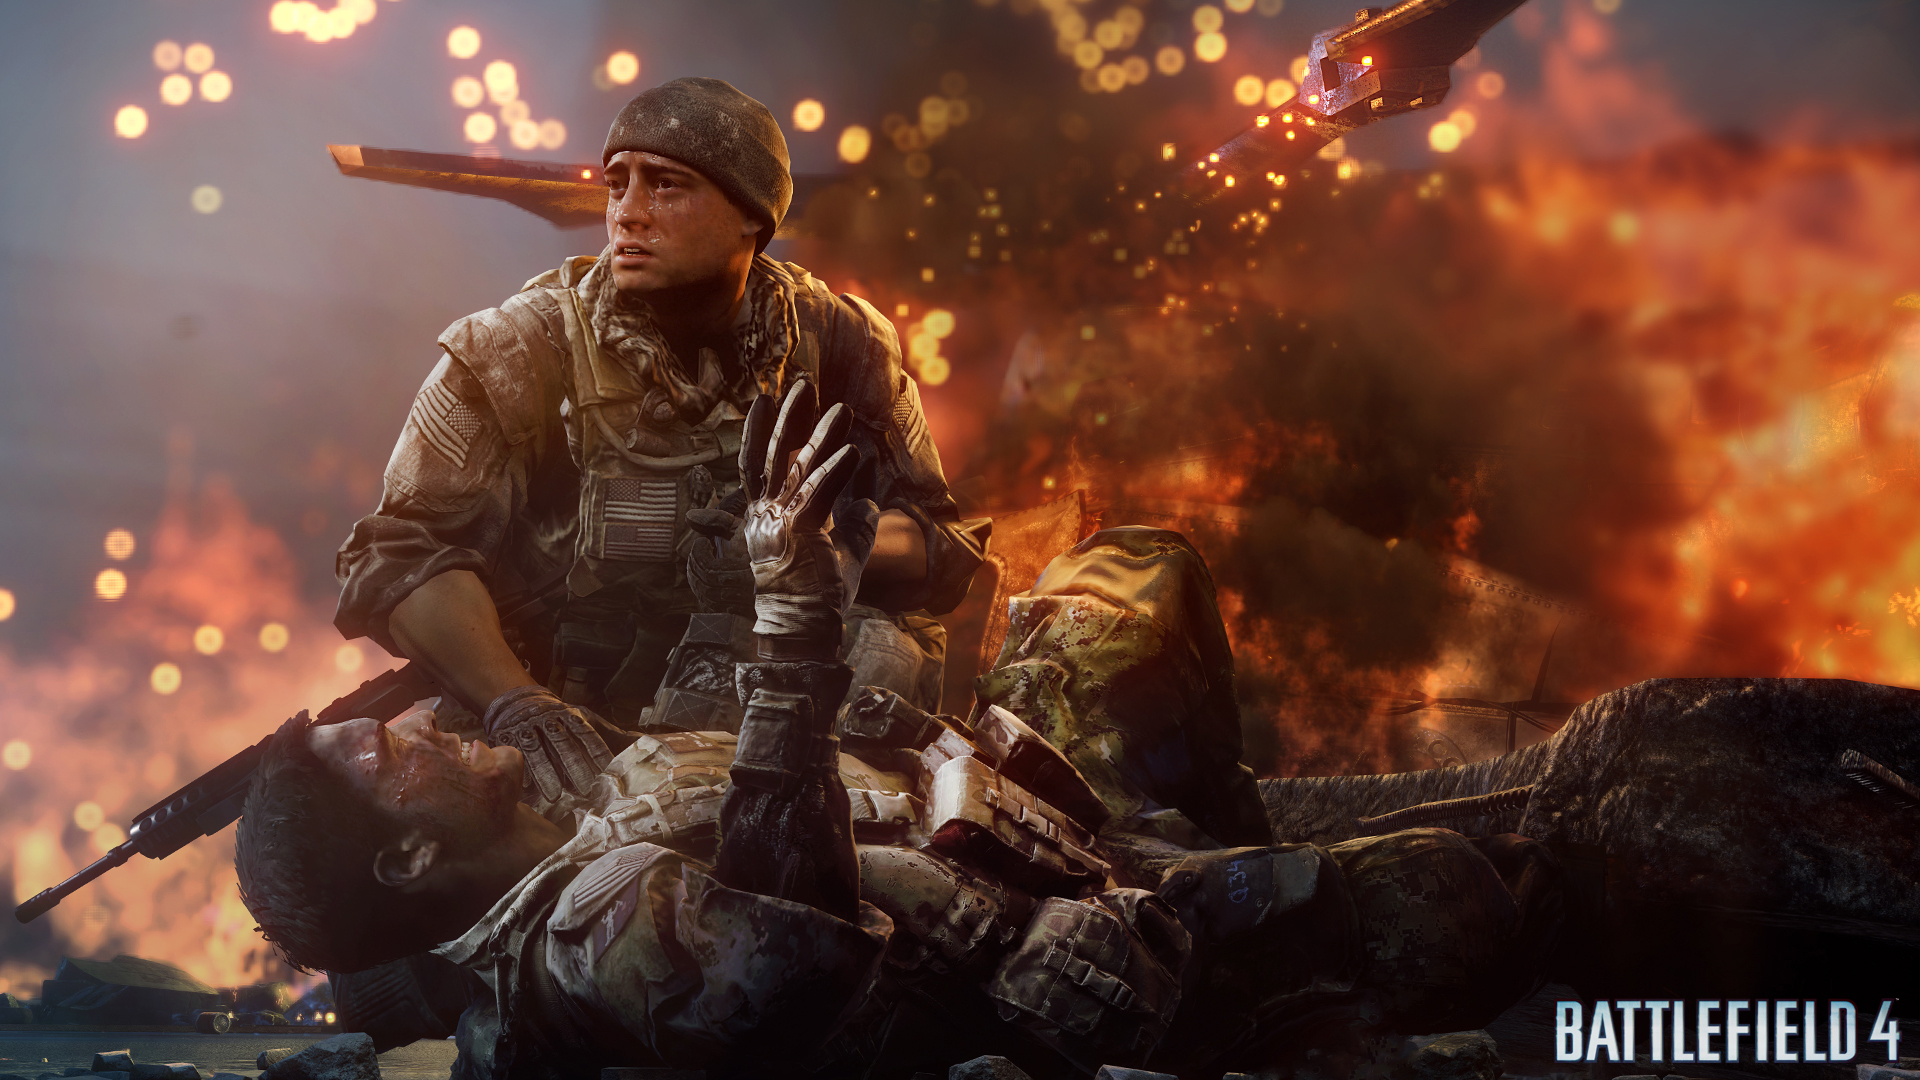 Battlefield 4 Playstation 4 | 2